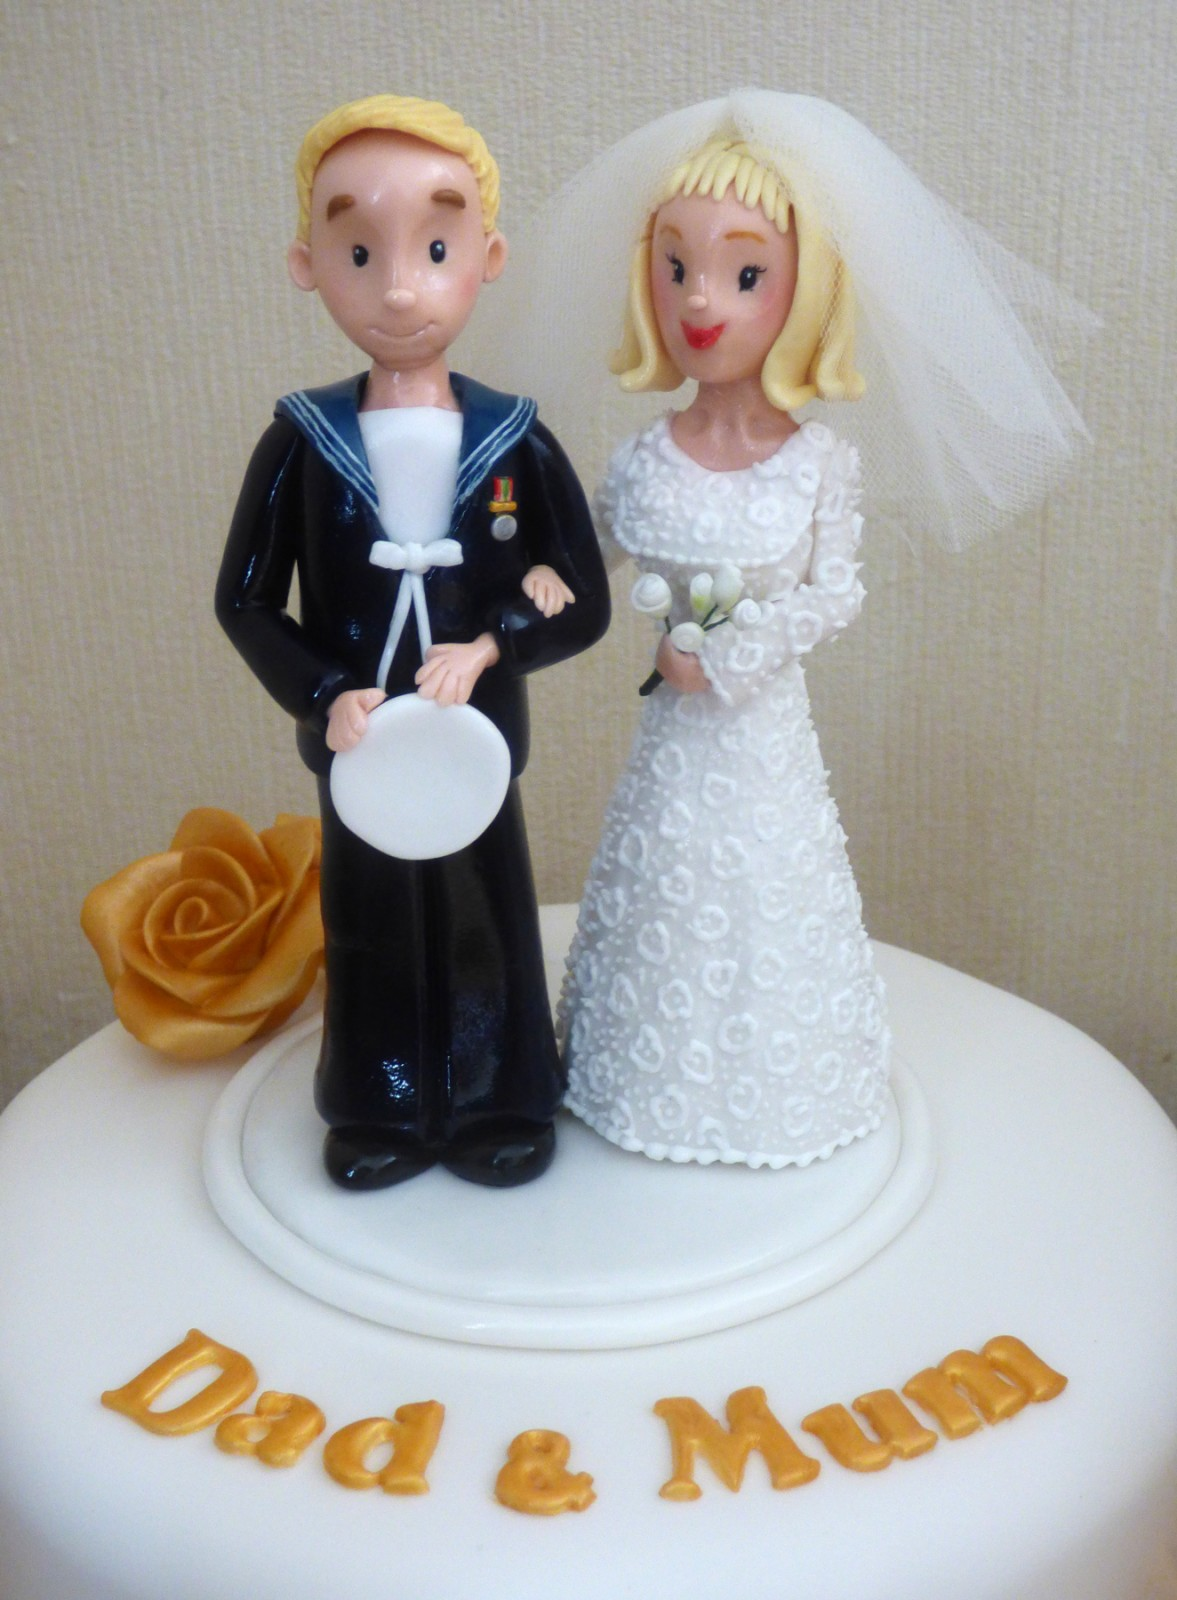 Golden Wedding Anniversary Cake With Bride And Groom Topper